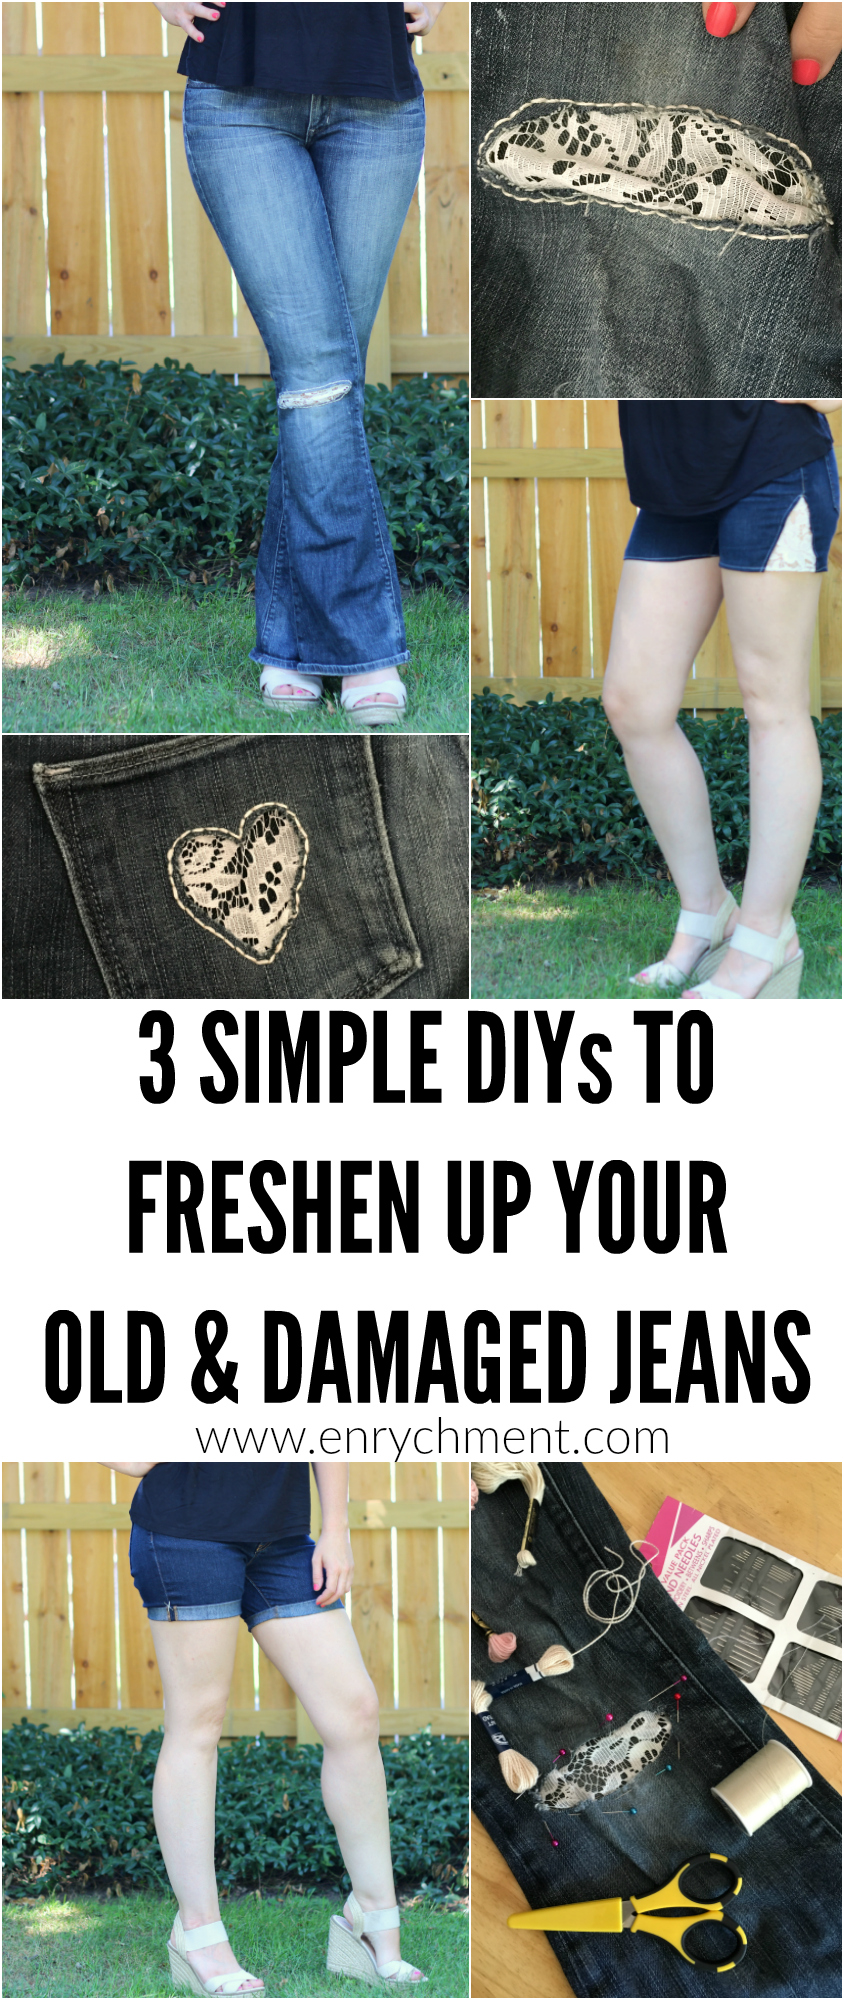 Give your old jeans new life with these 3 simple & pretty DIYs!